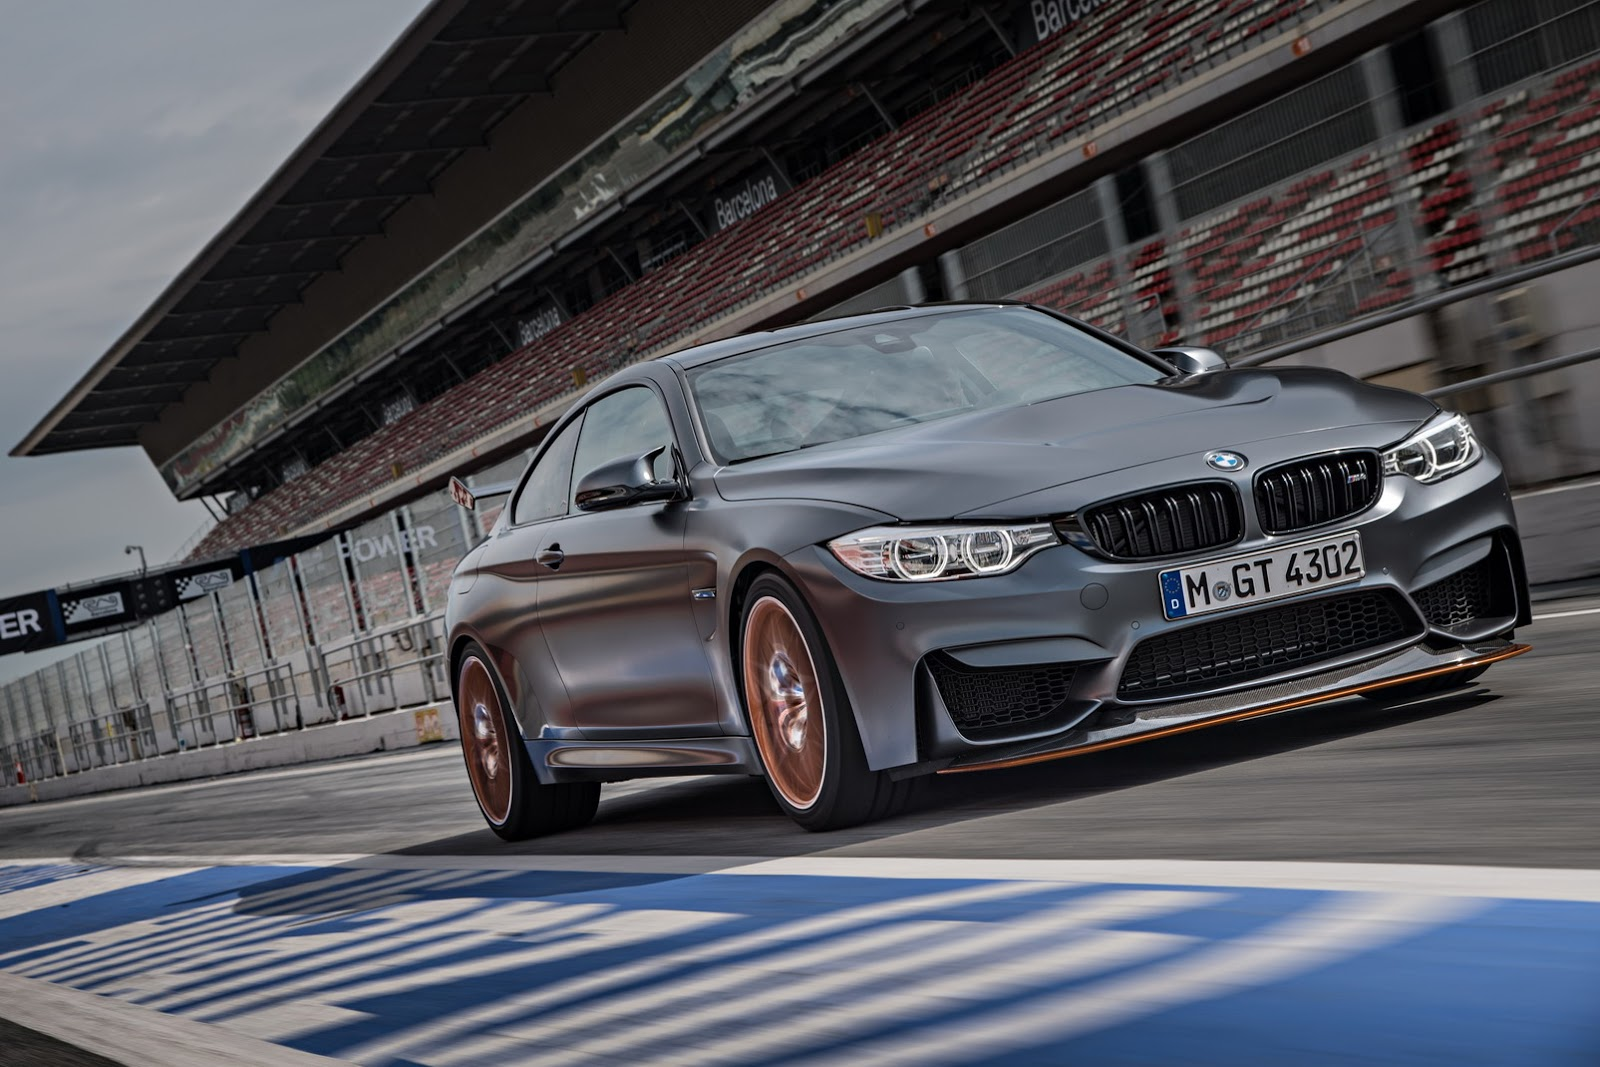 Wonderful image of BMW Drops New Gallery Of M4 GTS And Its E30 E36 And E46 M3  with #415E8A color and 1600x1067 pixels